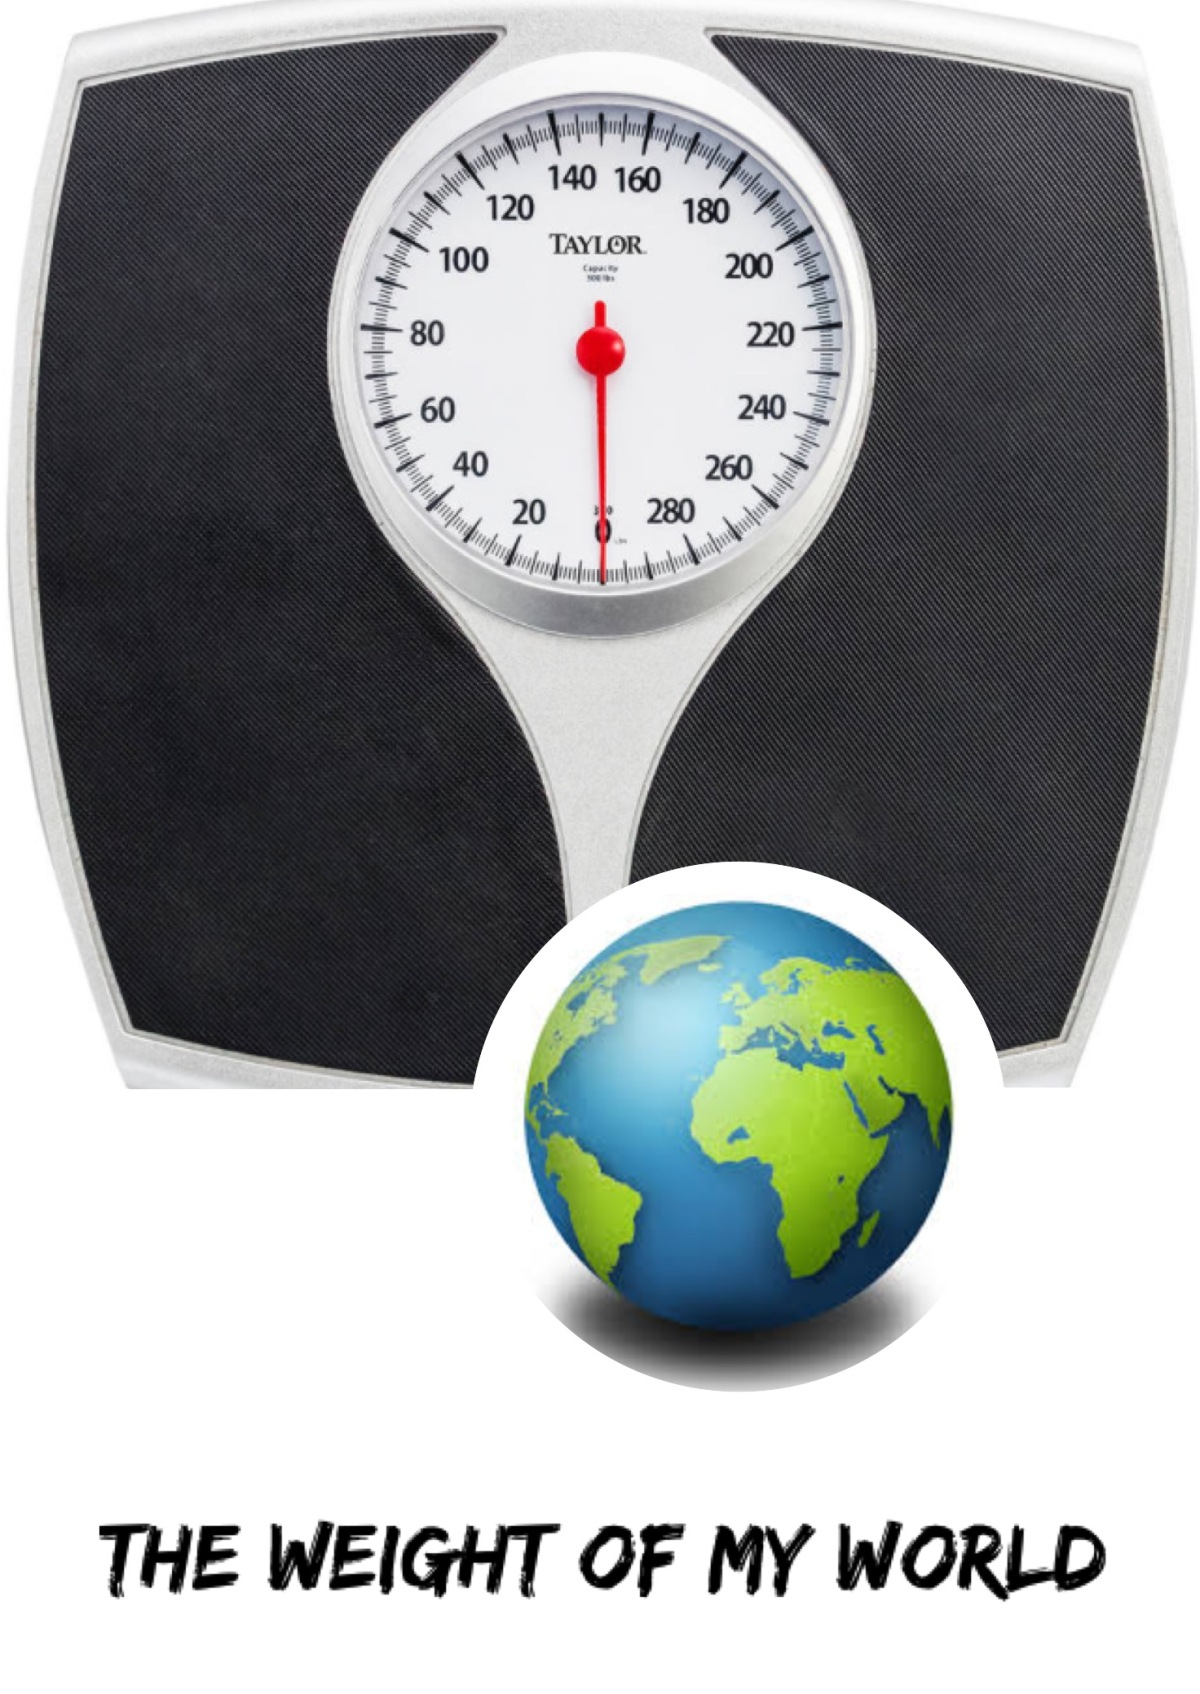 The Weight of MyWorld